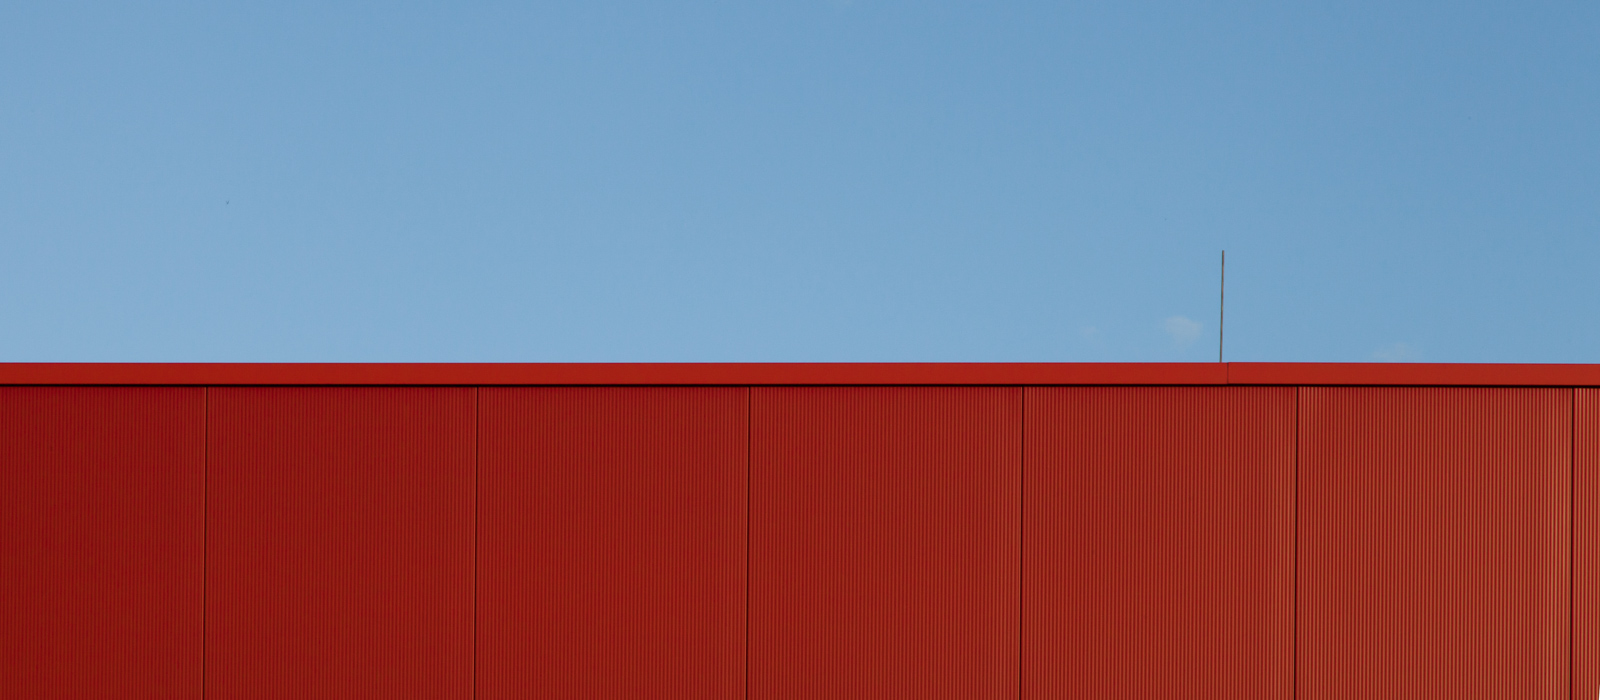 minimalistic horizontal image, seeming two-dimensional, showing a red steel wall with an antenna against the blue sky